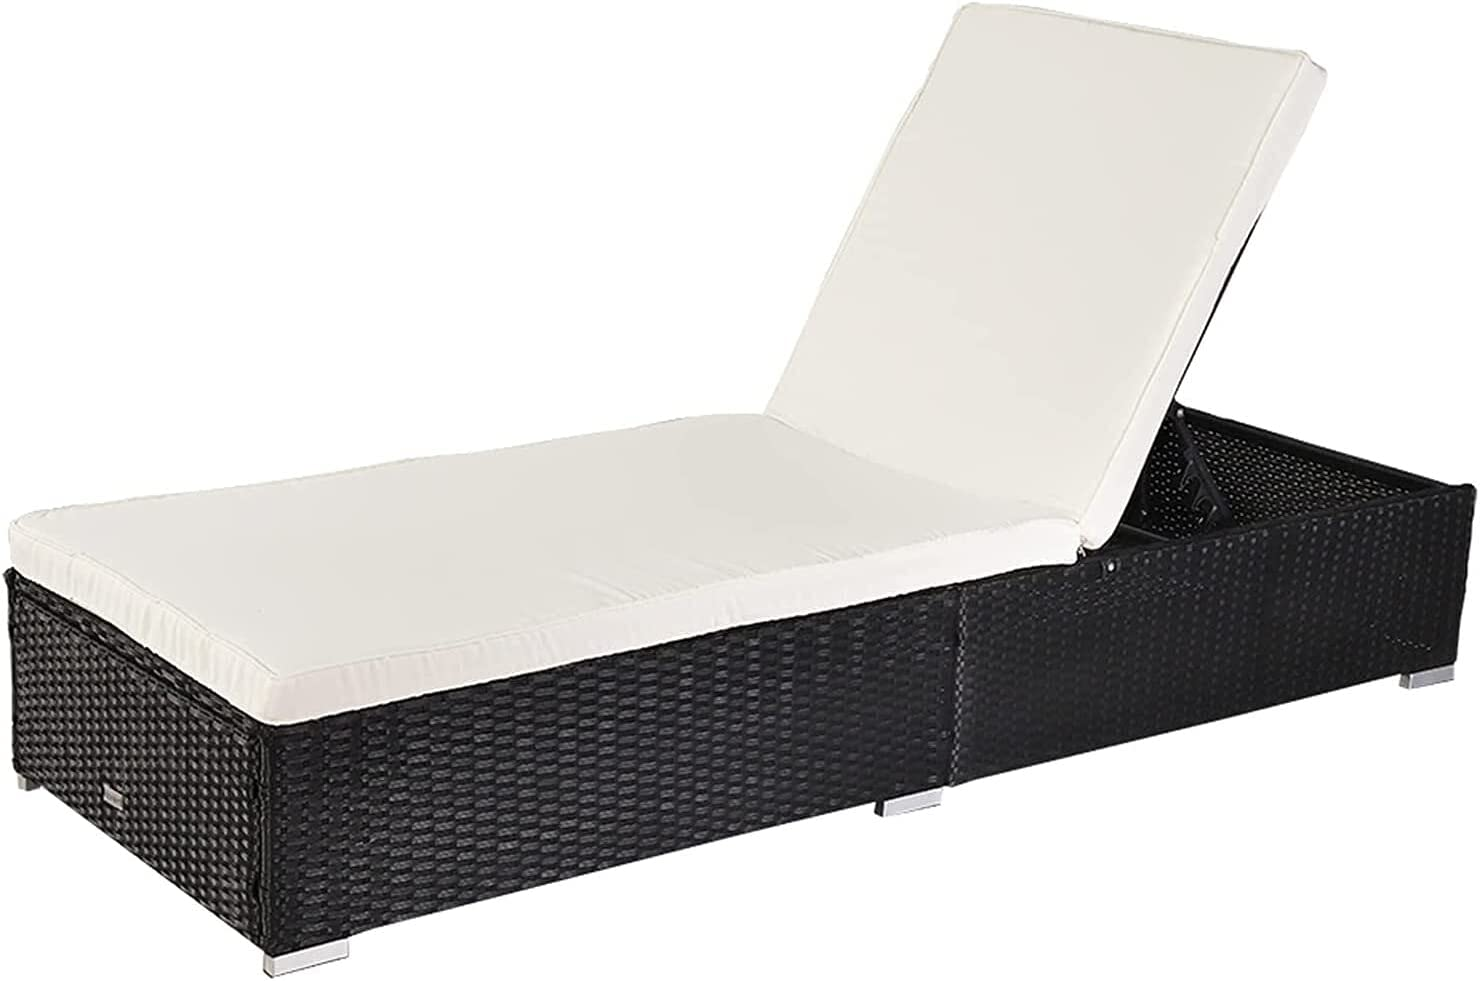 HDHUIXS Compactly Outdoor Leisure Rattan Pool Furniture Bed Max 41% Houston Mall OFF Chai